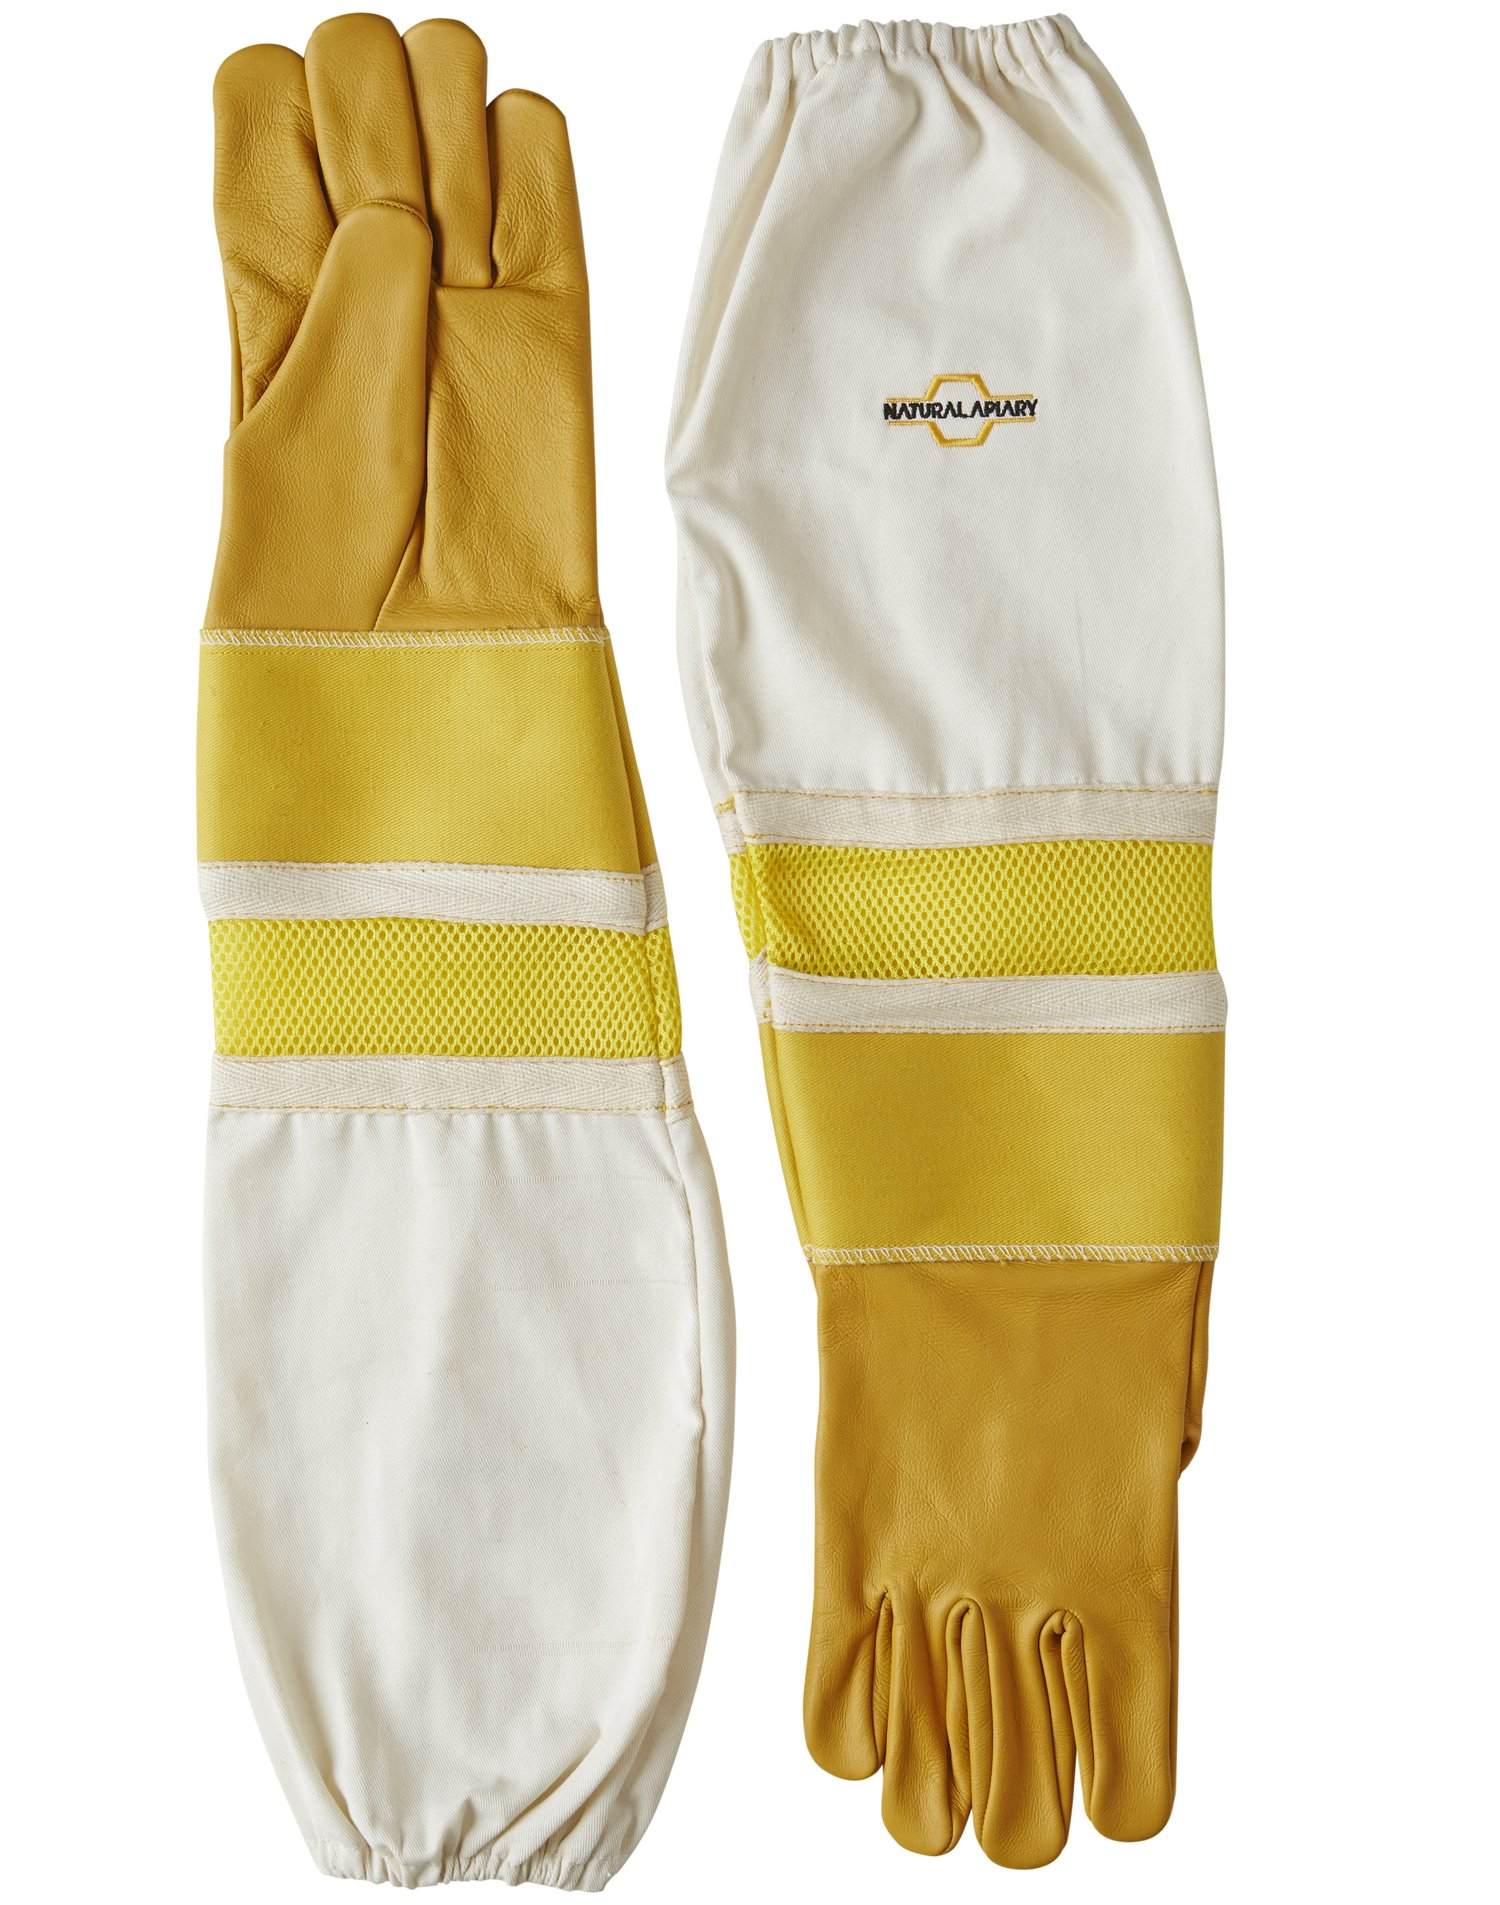 Natural Apiary Cowhide - Beekeeping Gloves - Ventilated Sleeves - Sting Proof Cuffs - Extra Long Extra Long Twill Elasticated Gauntlets - X X Large